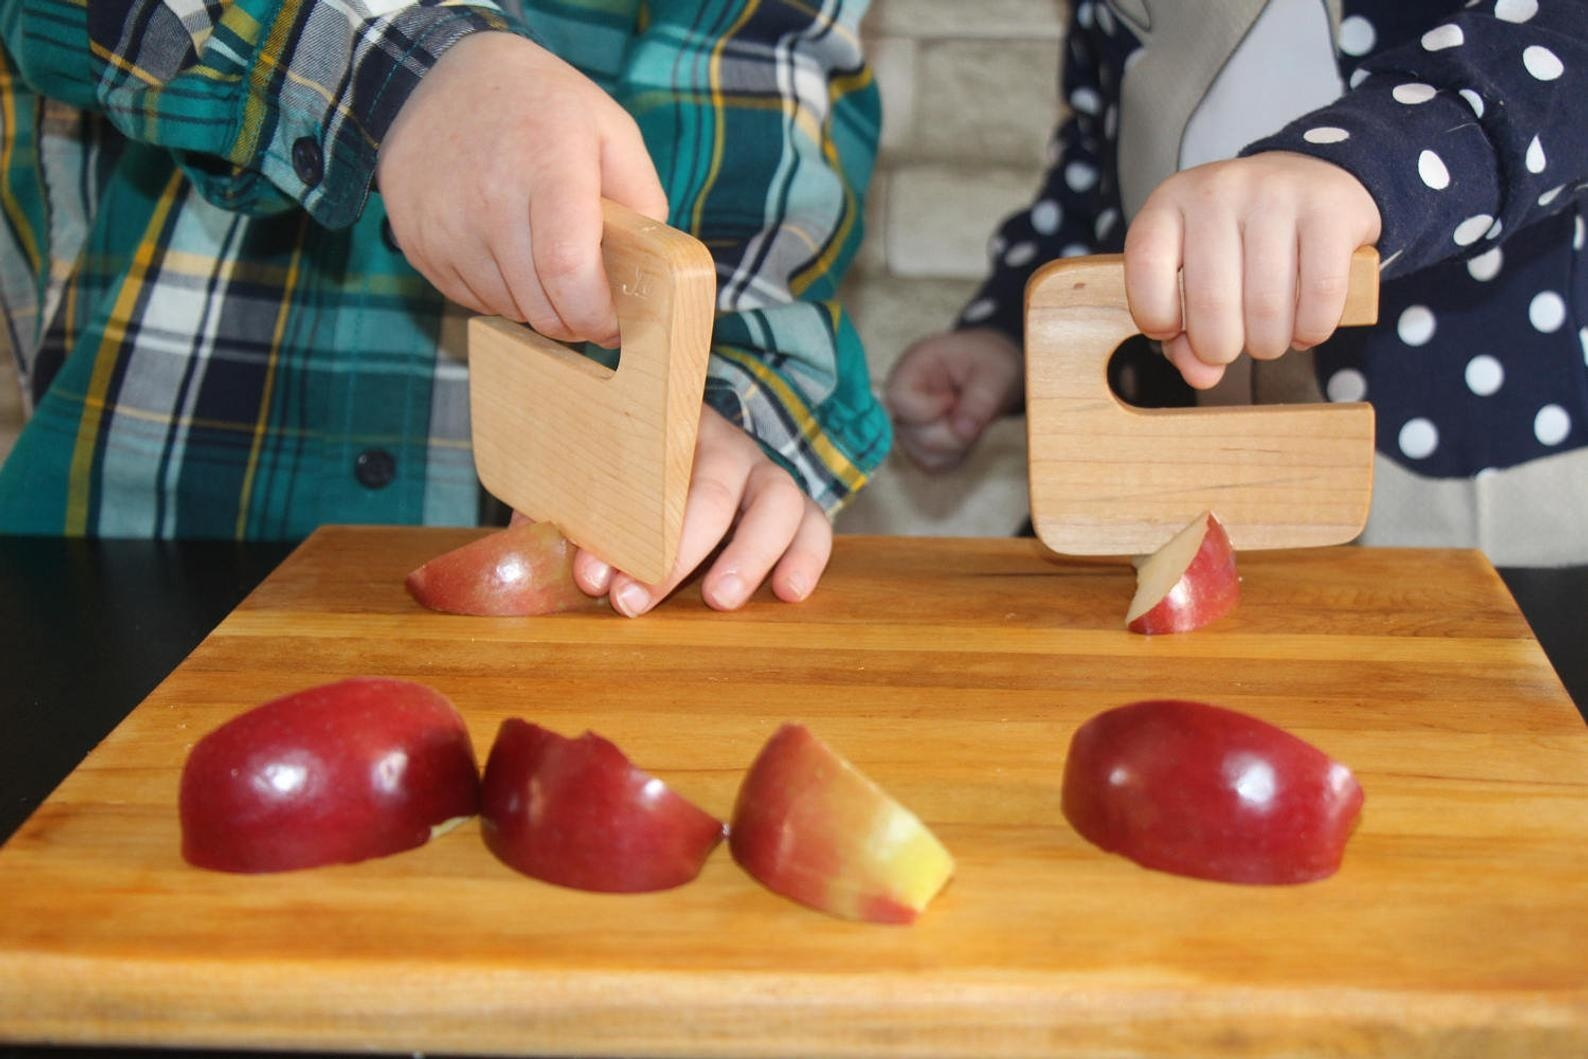 kids using the wooden knives to chop apples